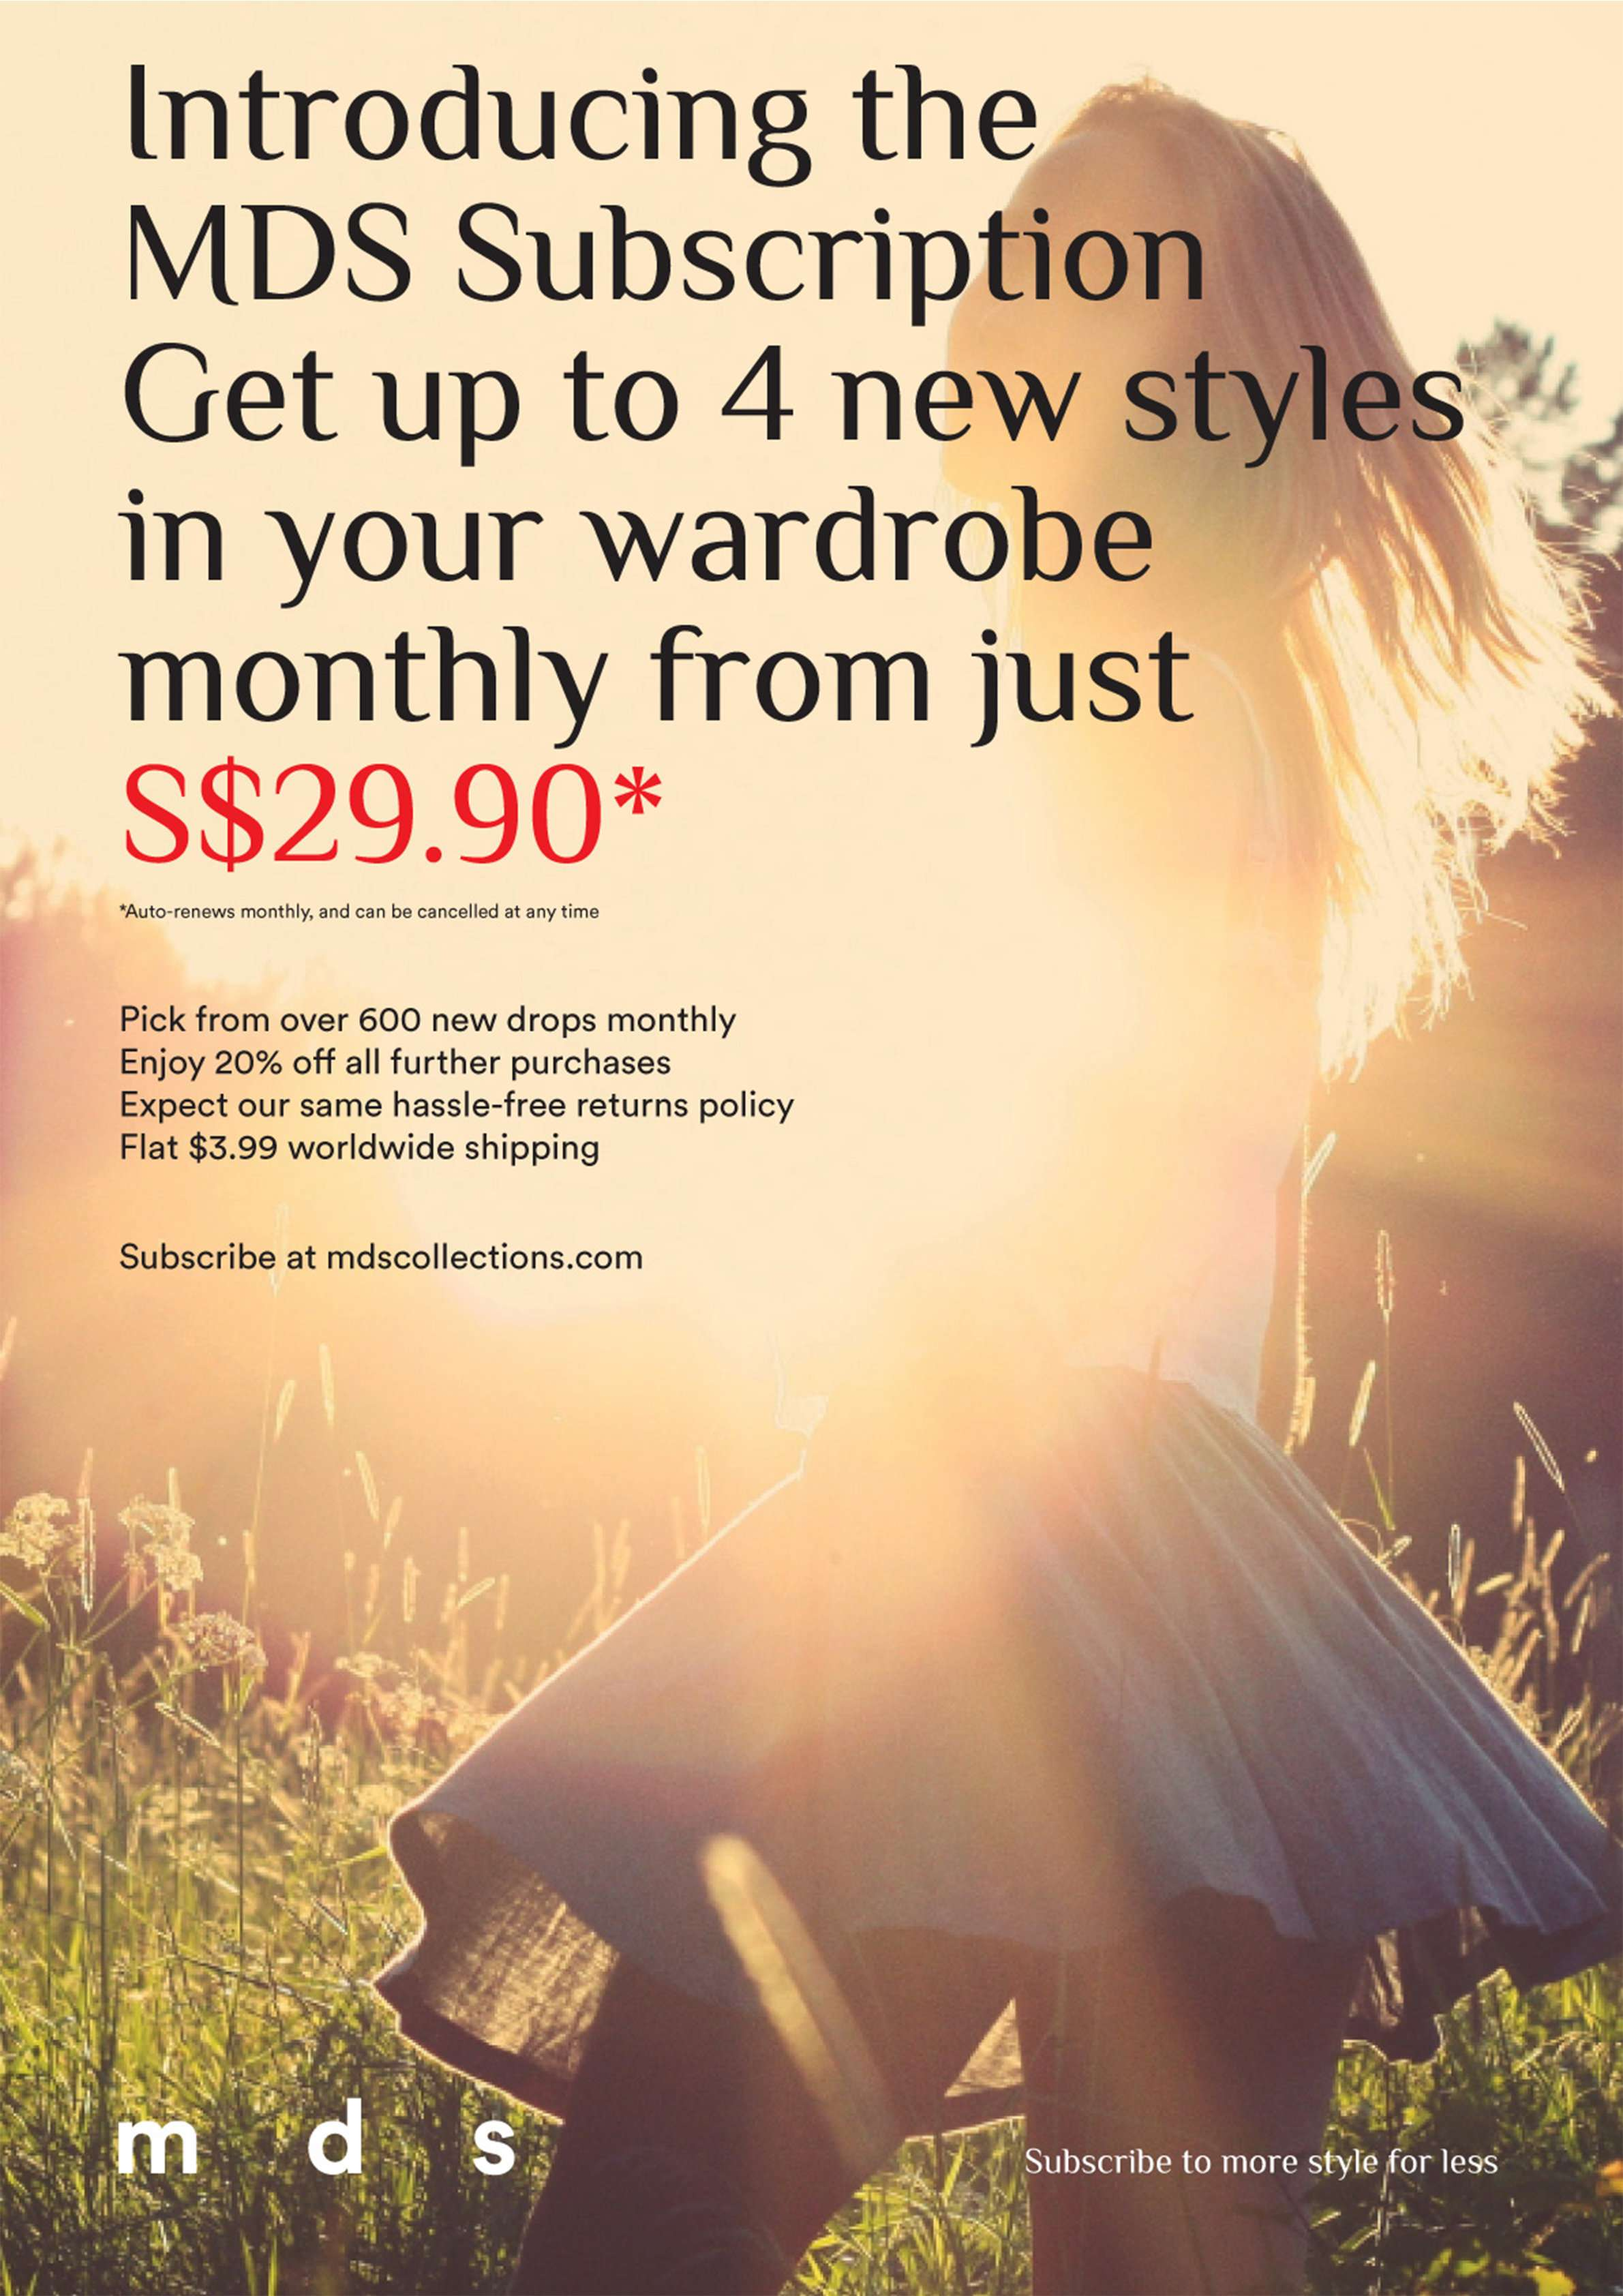 Introducing the MDS Subscription. Get up to 4 new styles in your wardrobe monthly from just S$29.90.